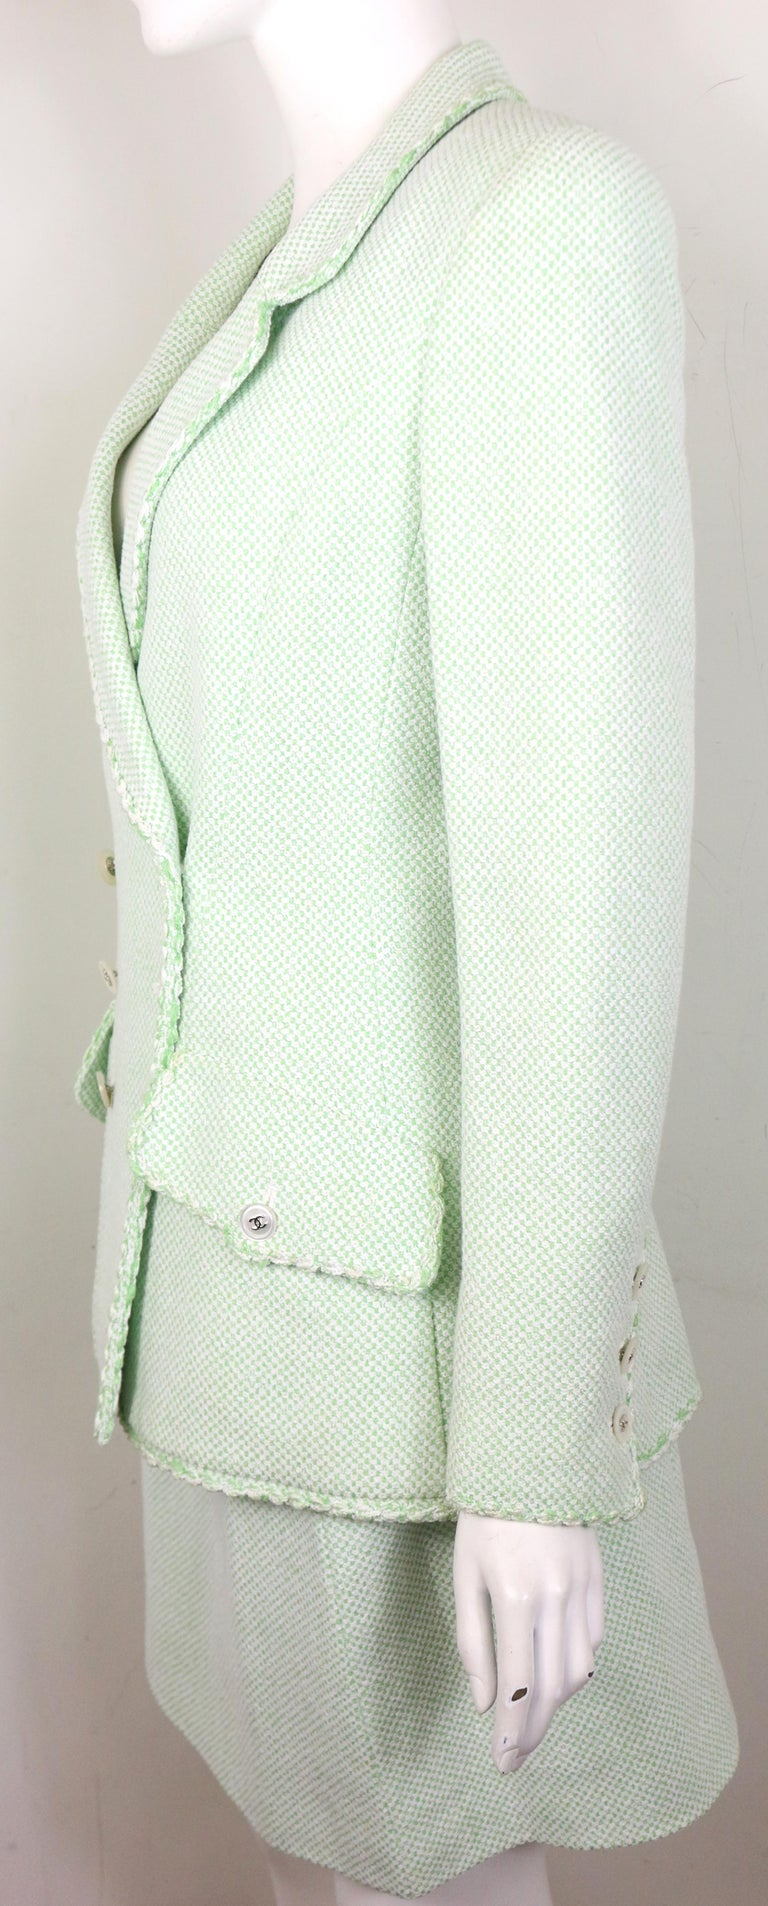 Chanel White/Green Cotton and Wool Double-Breasted Jacket and Skirt Ensemble  For Sale 1